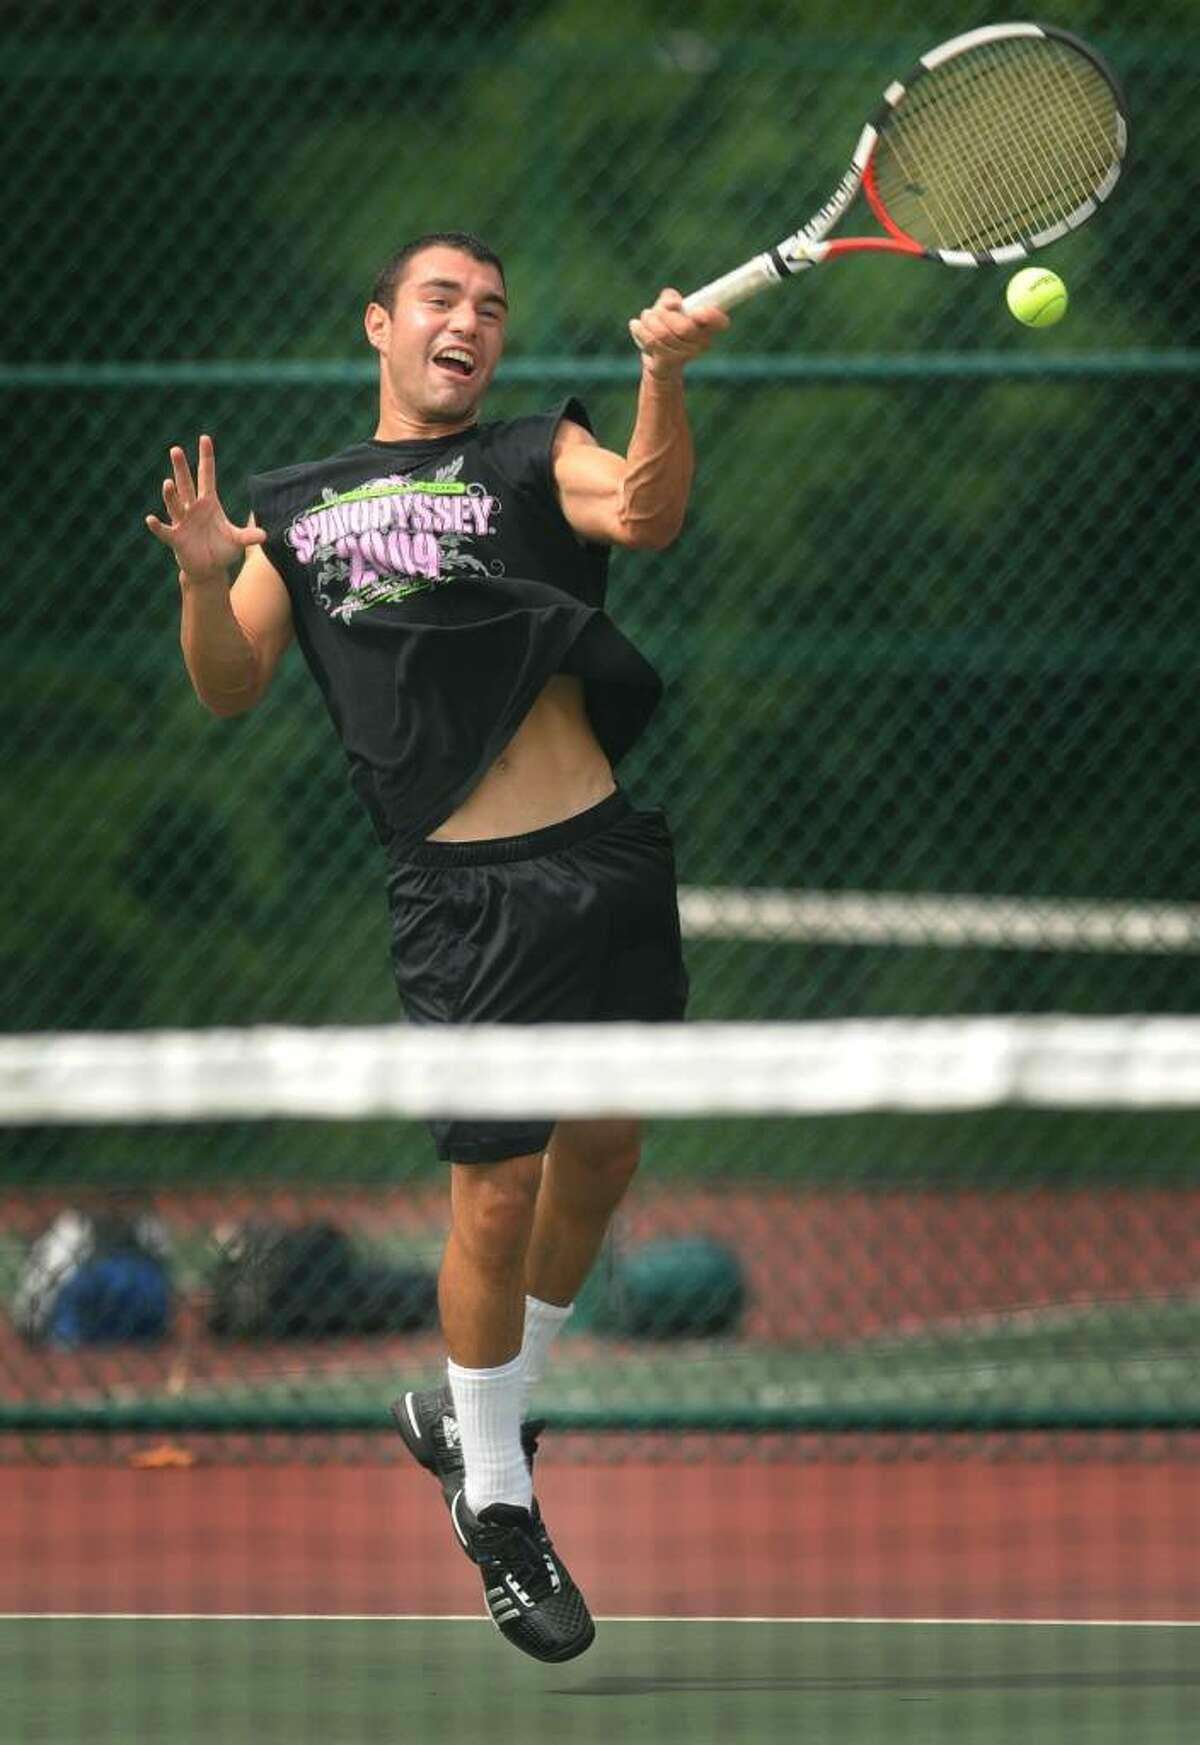 Trinity Catholic's Dante Terenzio slams a forehand at the boys state tennis open at Hamden High School on Monday, June 14, 2010. Terenzio, who will be attending the University of Louisville, is the defending state champion.